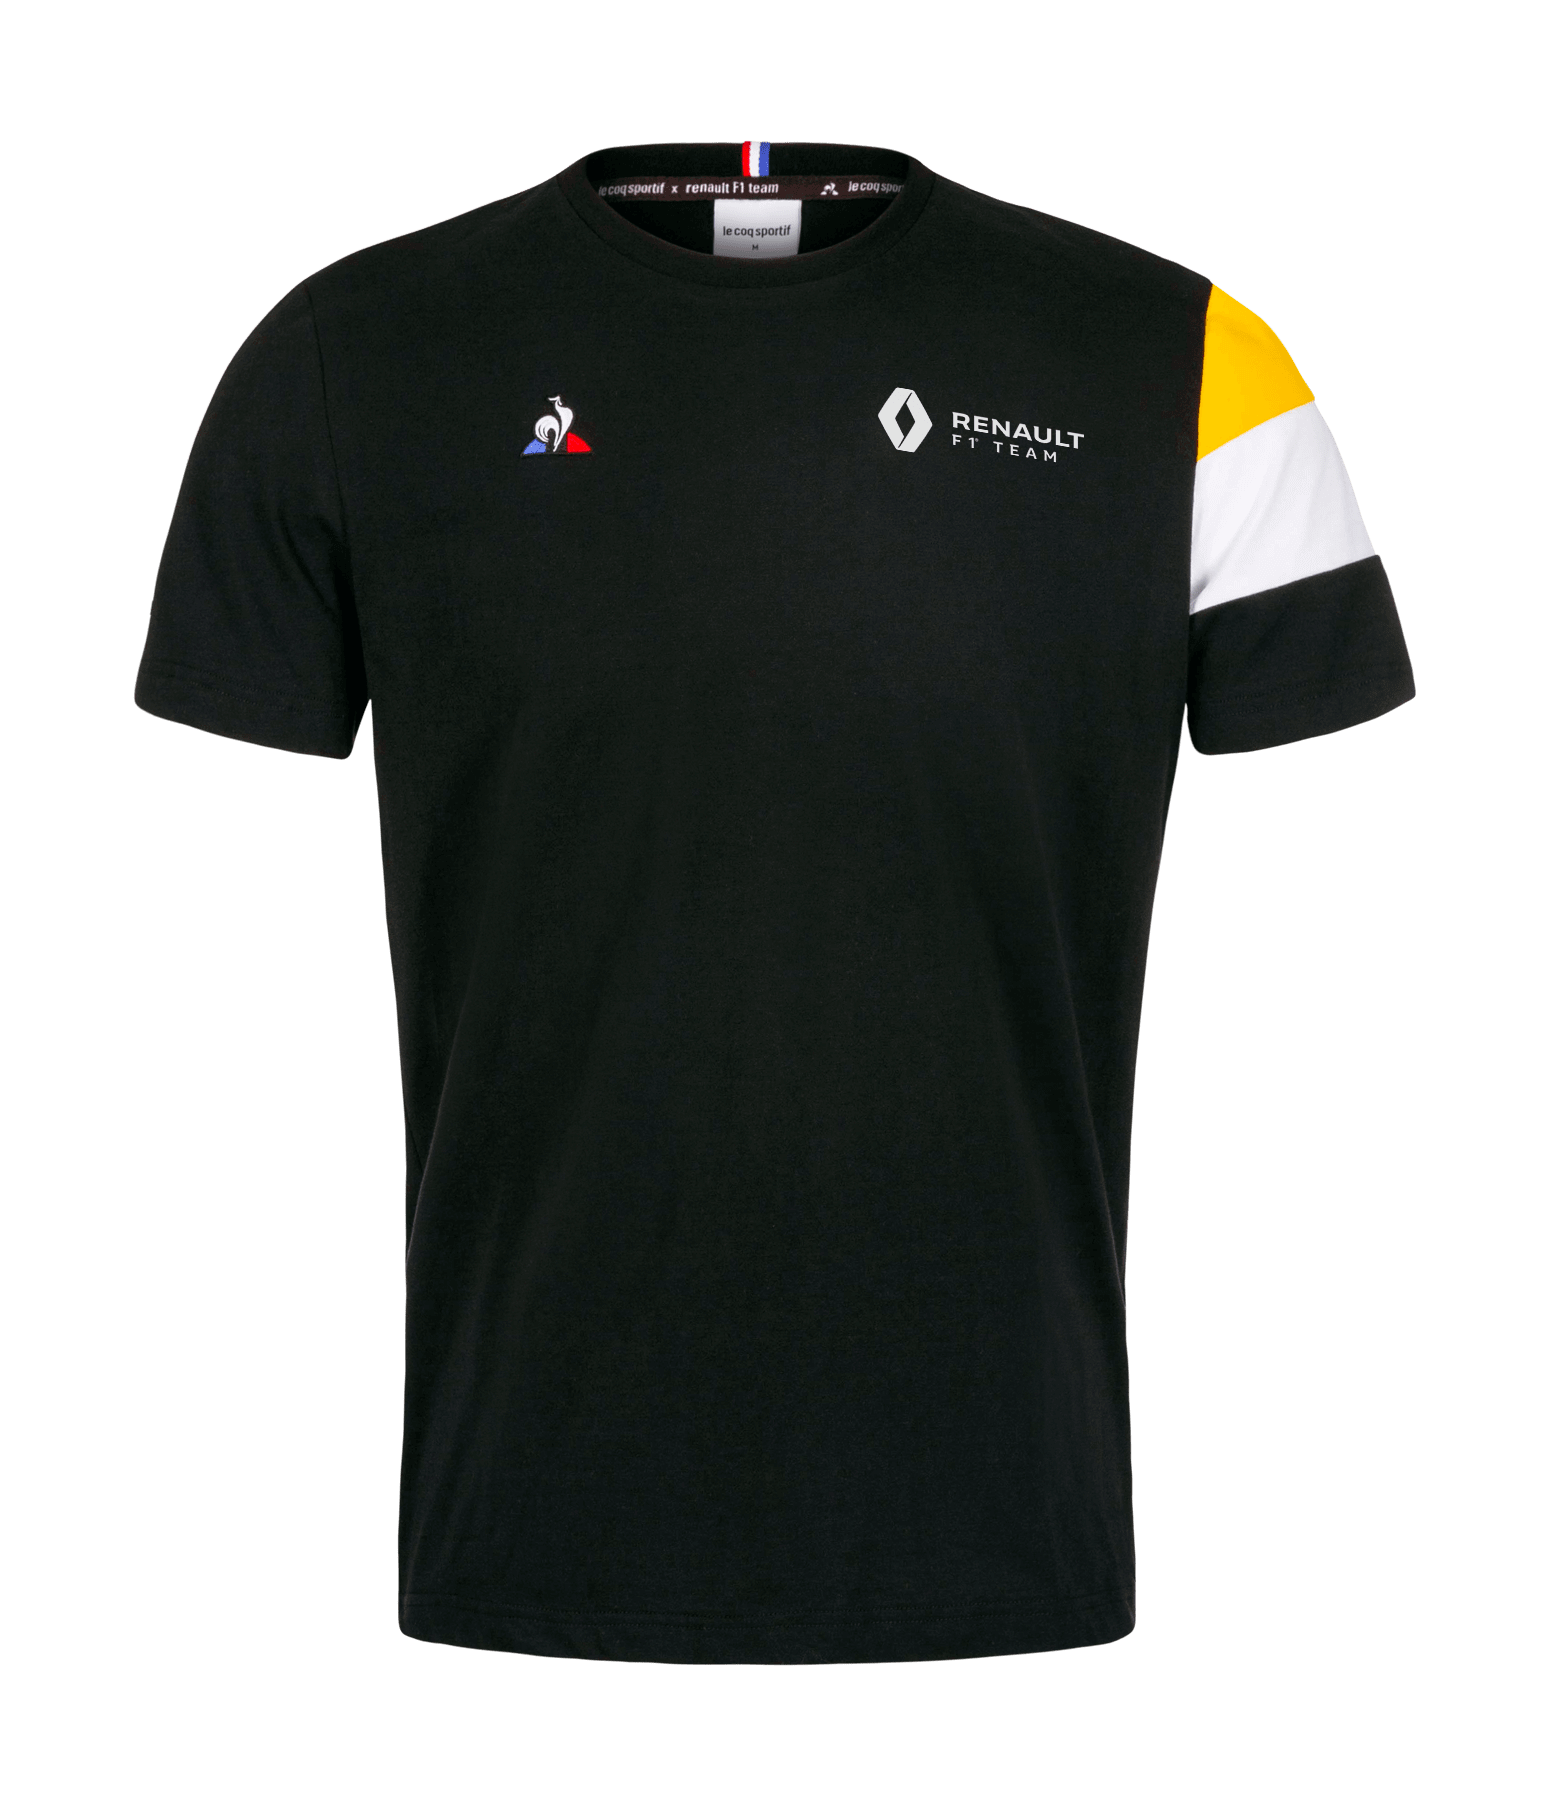 RENAULT F1® TEAM fan men's T-shirt - black